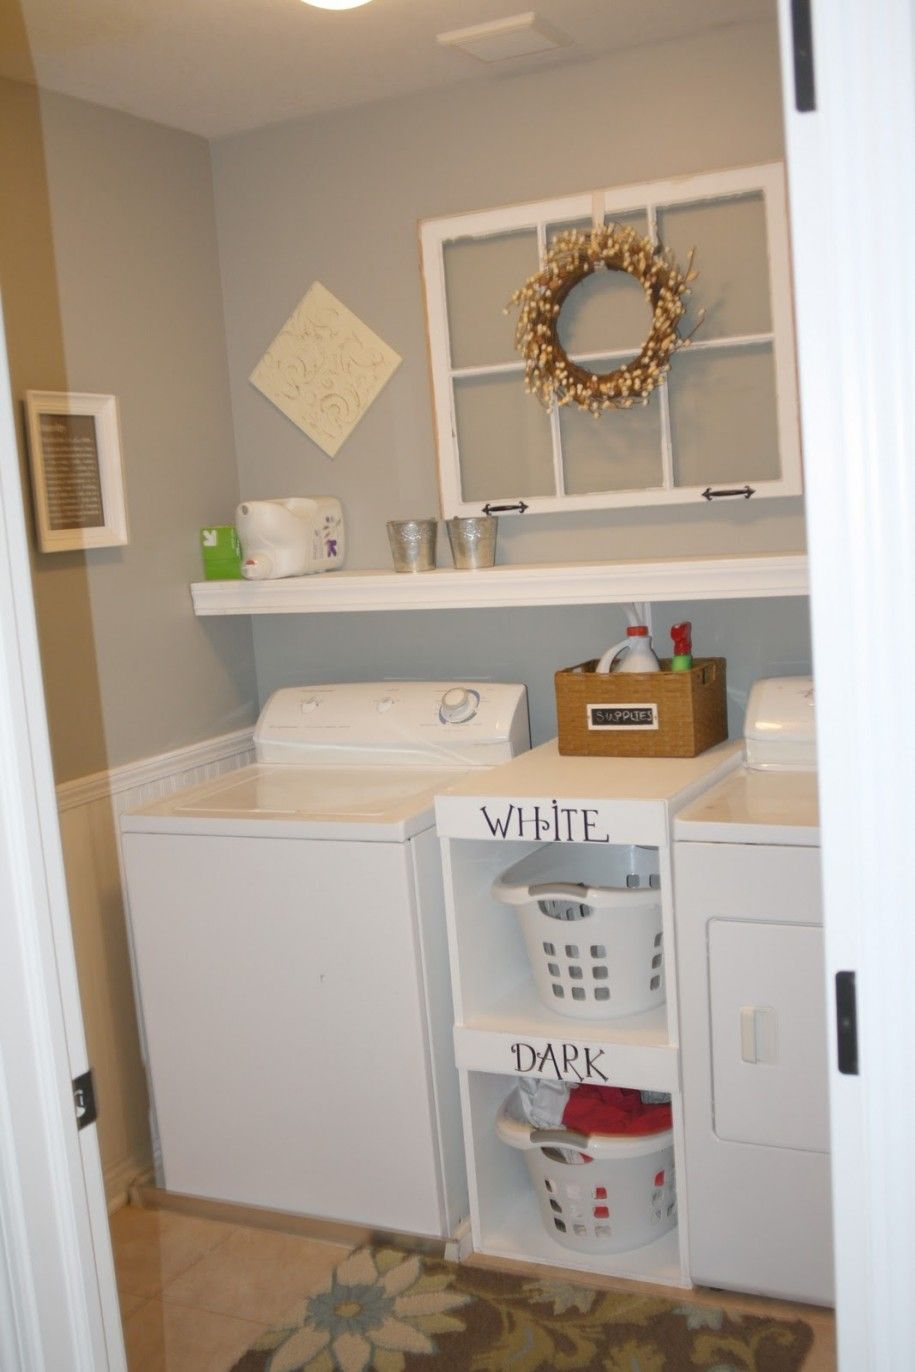 Cute Laundry Room Decor Laundry Room Images  Simple Small Laundry Room With Shelving